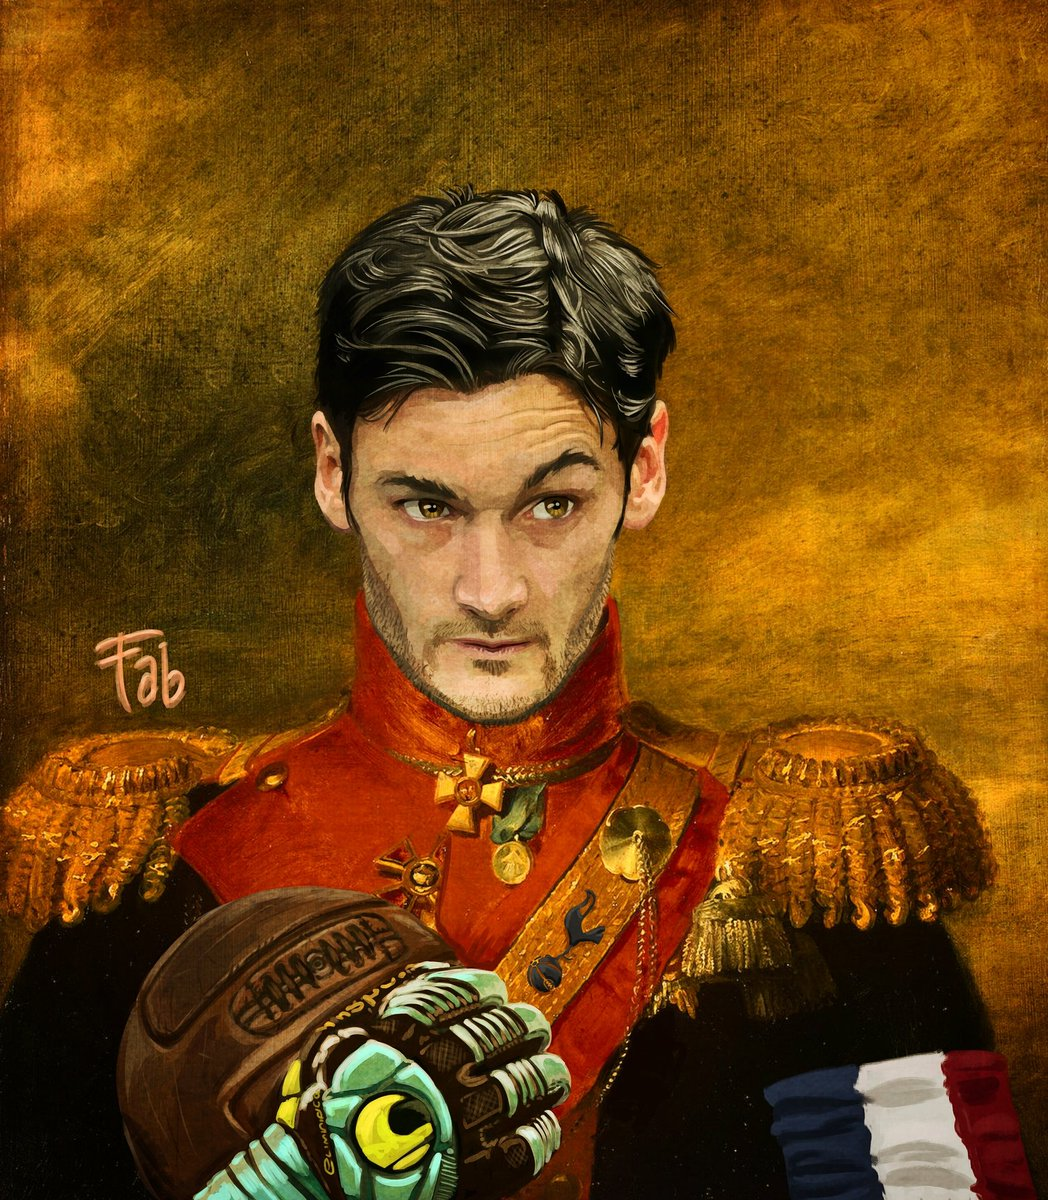 Hugo Lloris, France @H_Lloris @SpursOfficial @equipedefrance @Uhlsportuk @UEFAEURO #EURO2016 #france  #lloris https://t.co/Apidr1GLN0